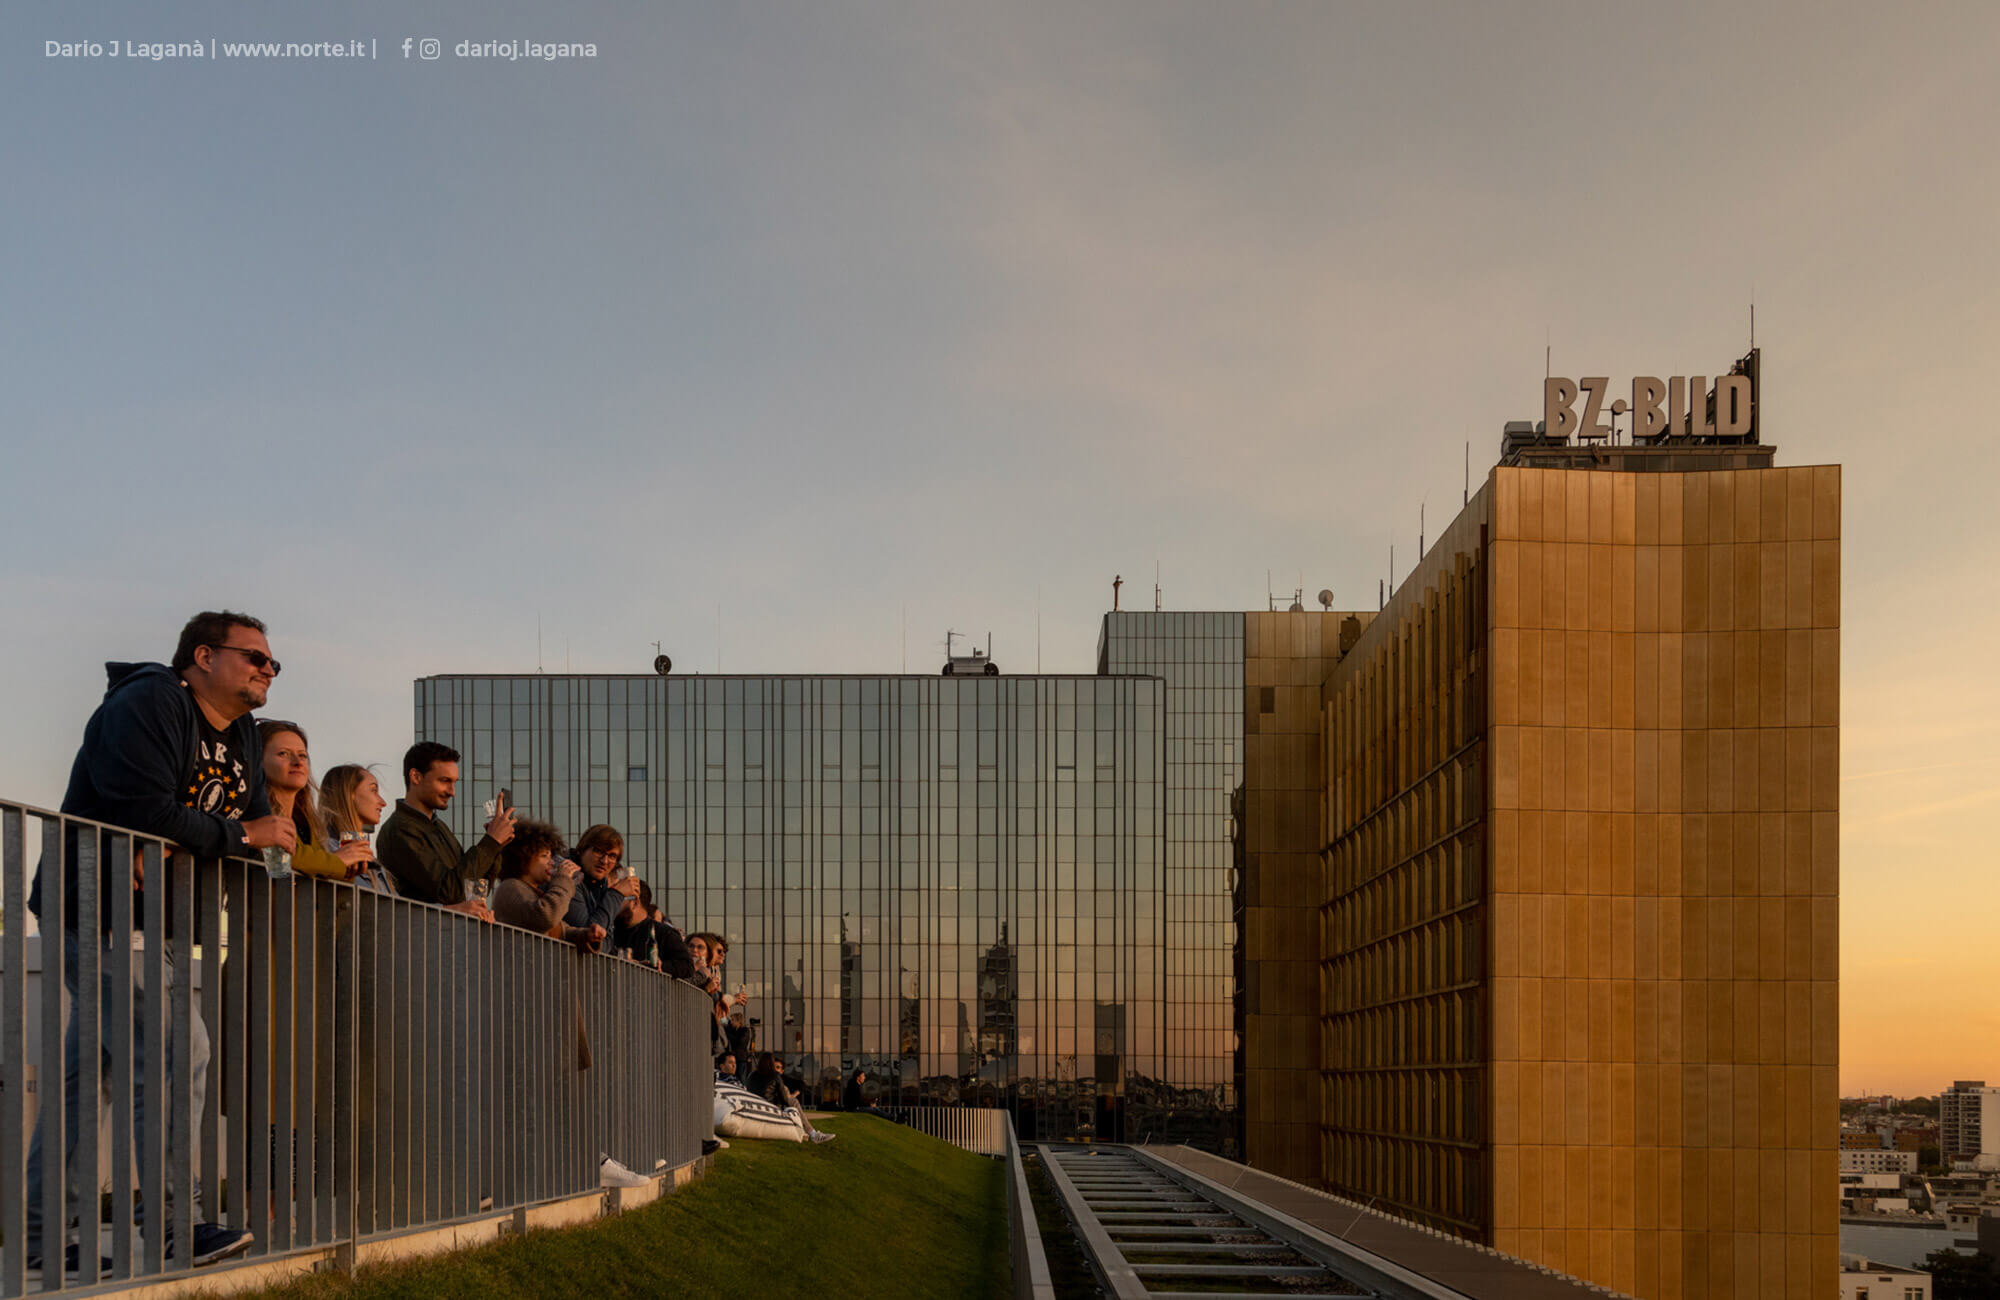 Axel Springer employees on the REM roof terrace, in the background the old Axel Springer high rise